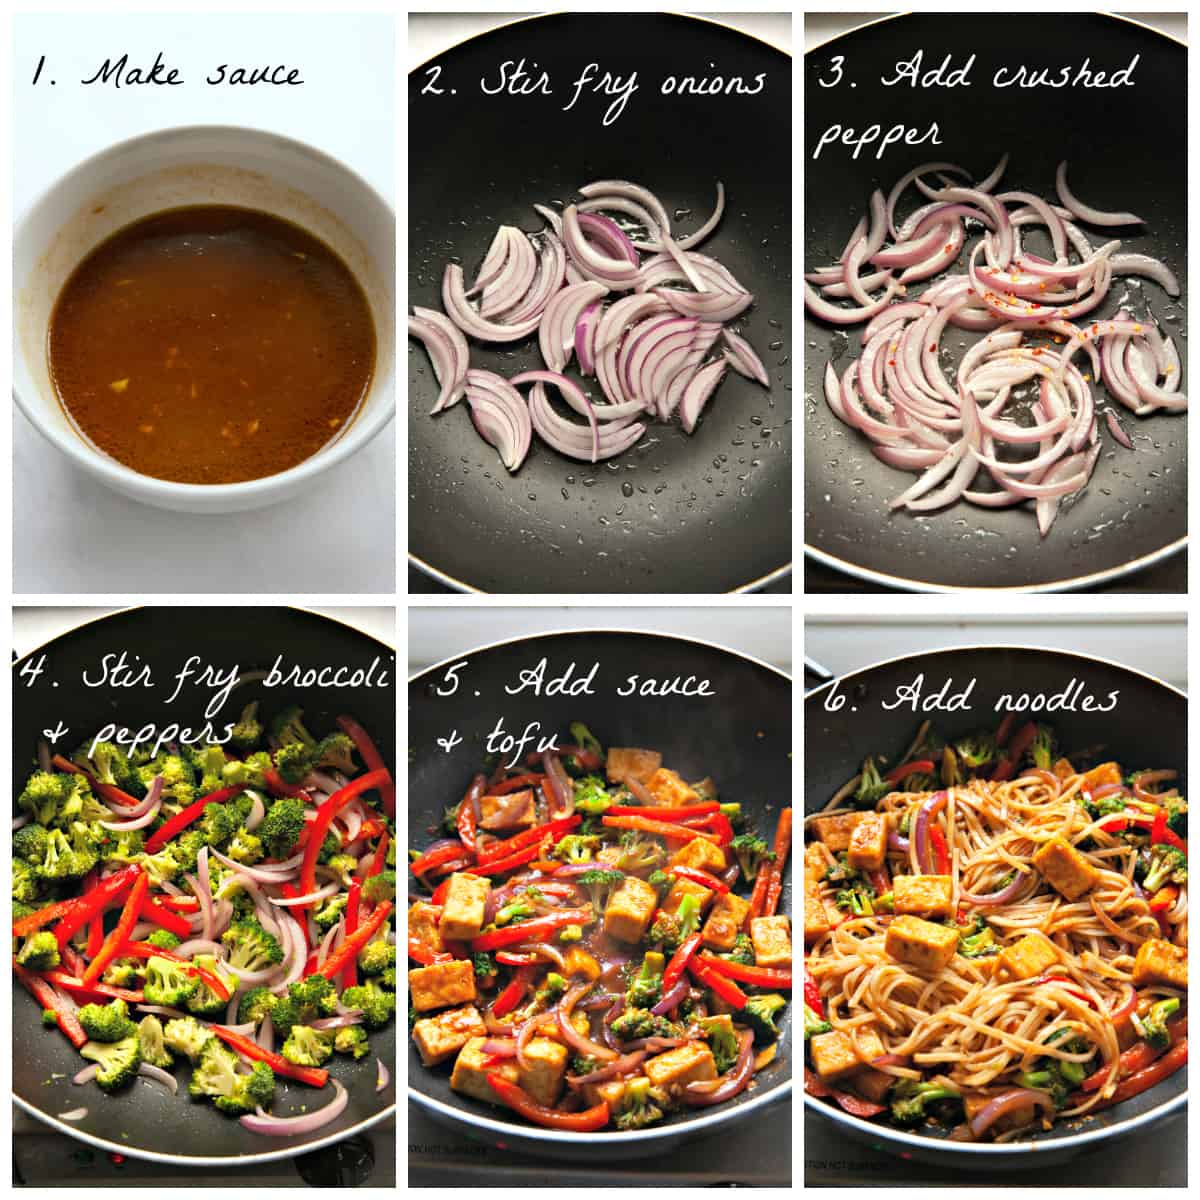 6 process photos of making sauce and cooking veggies in a pan.